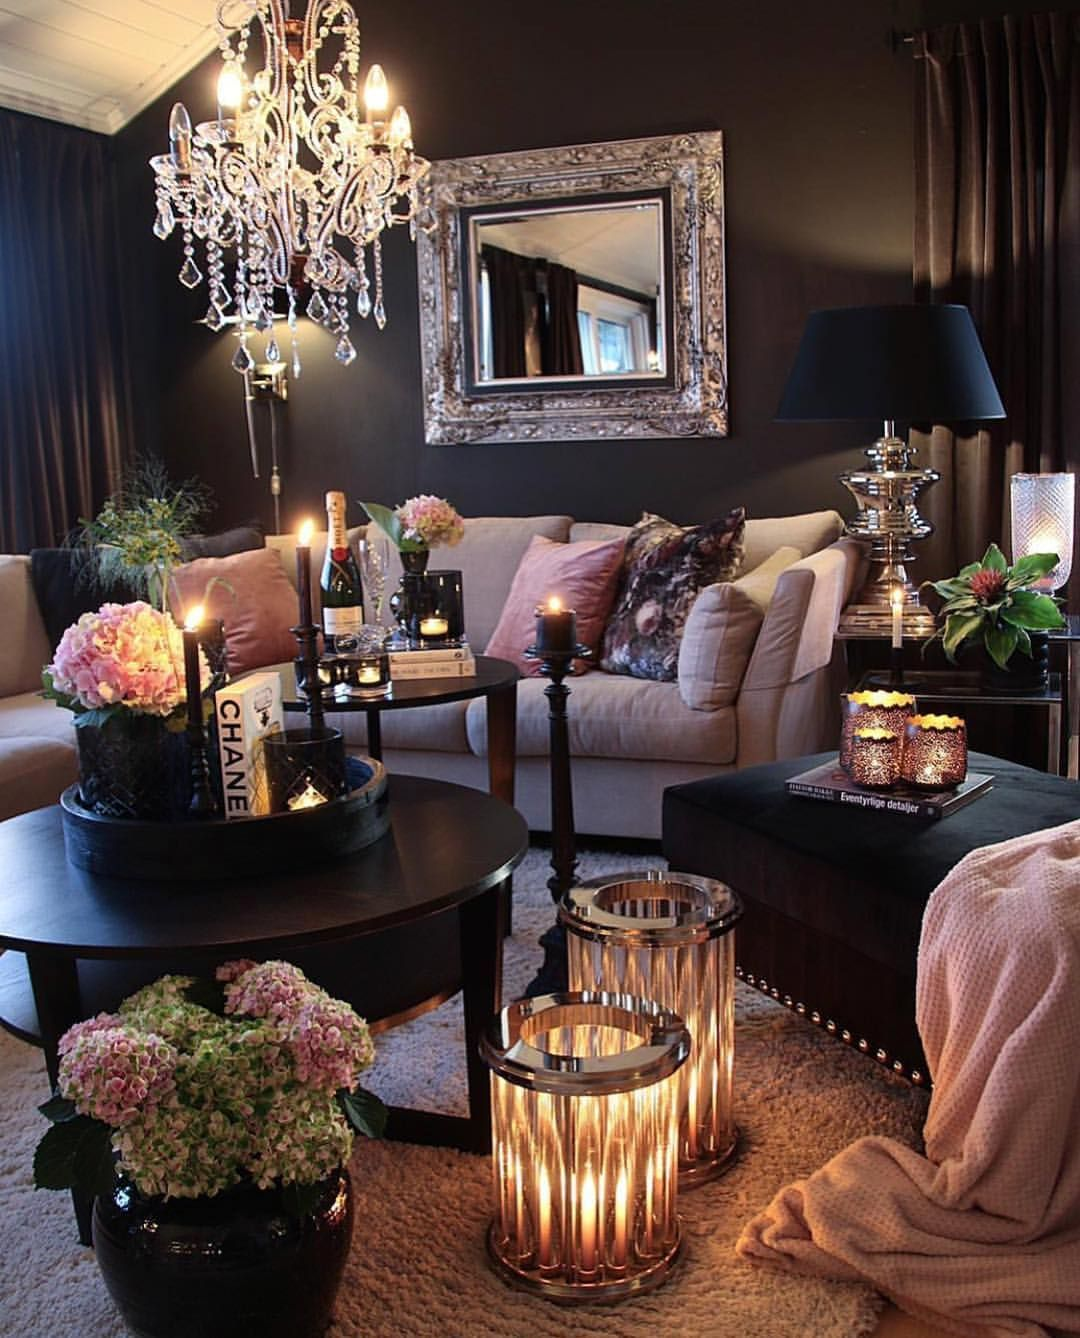 Home Interior Farmhouse In 2020 Glam Living Room Living Room Decor Cozy Living Room Inspiration